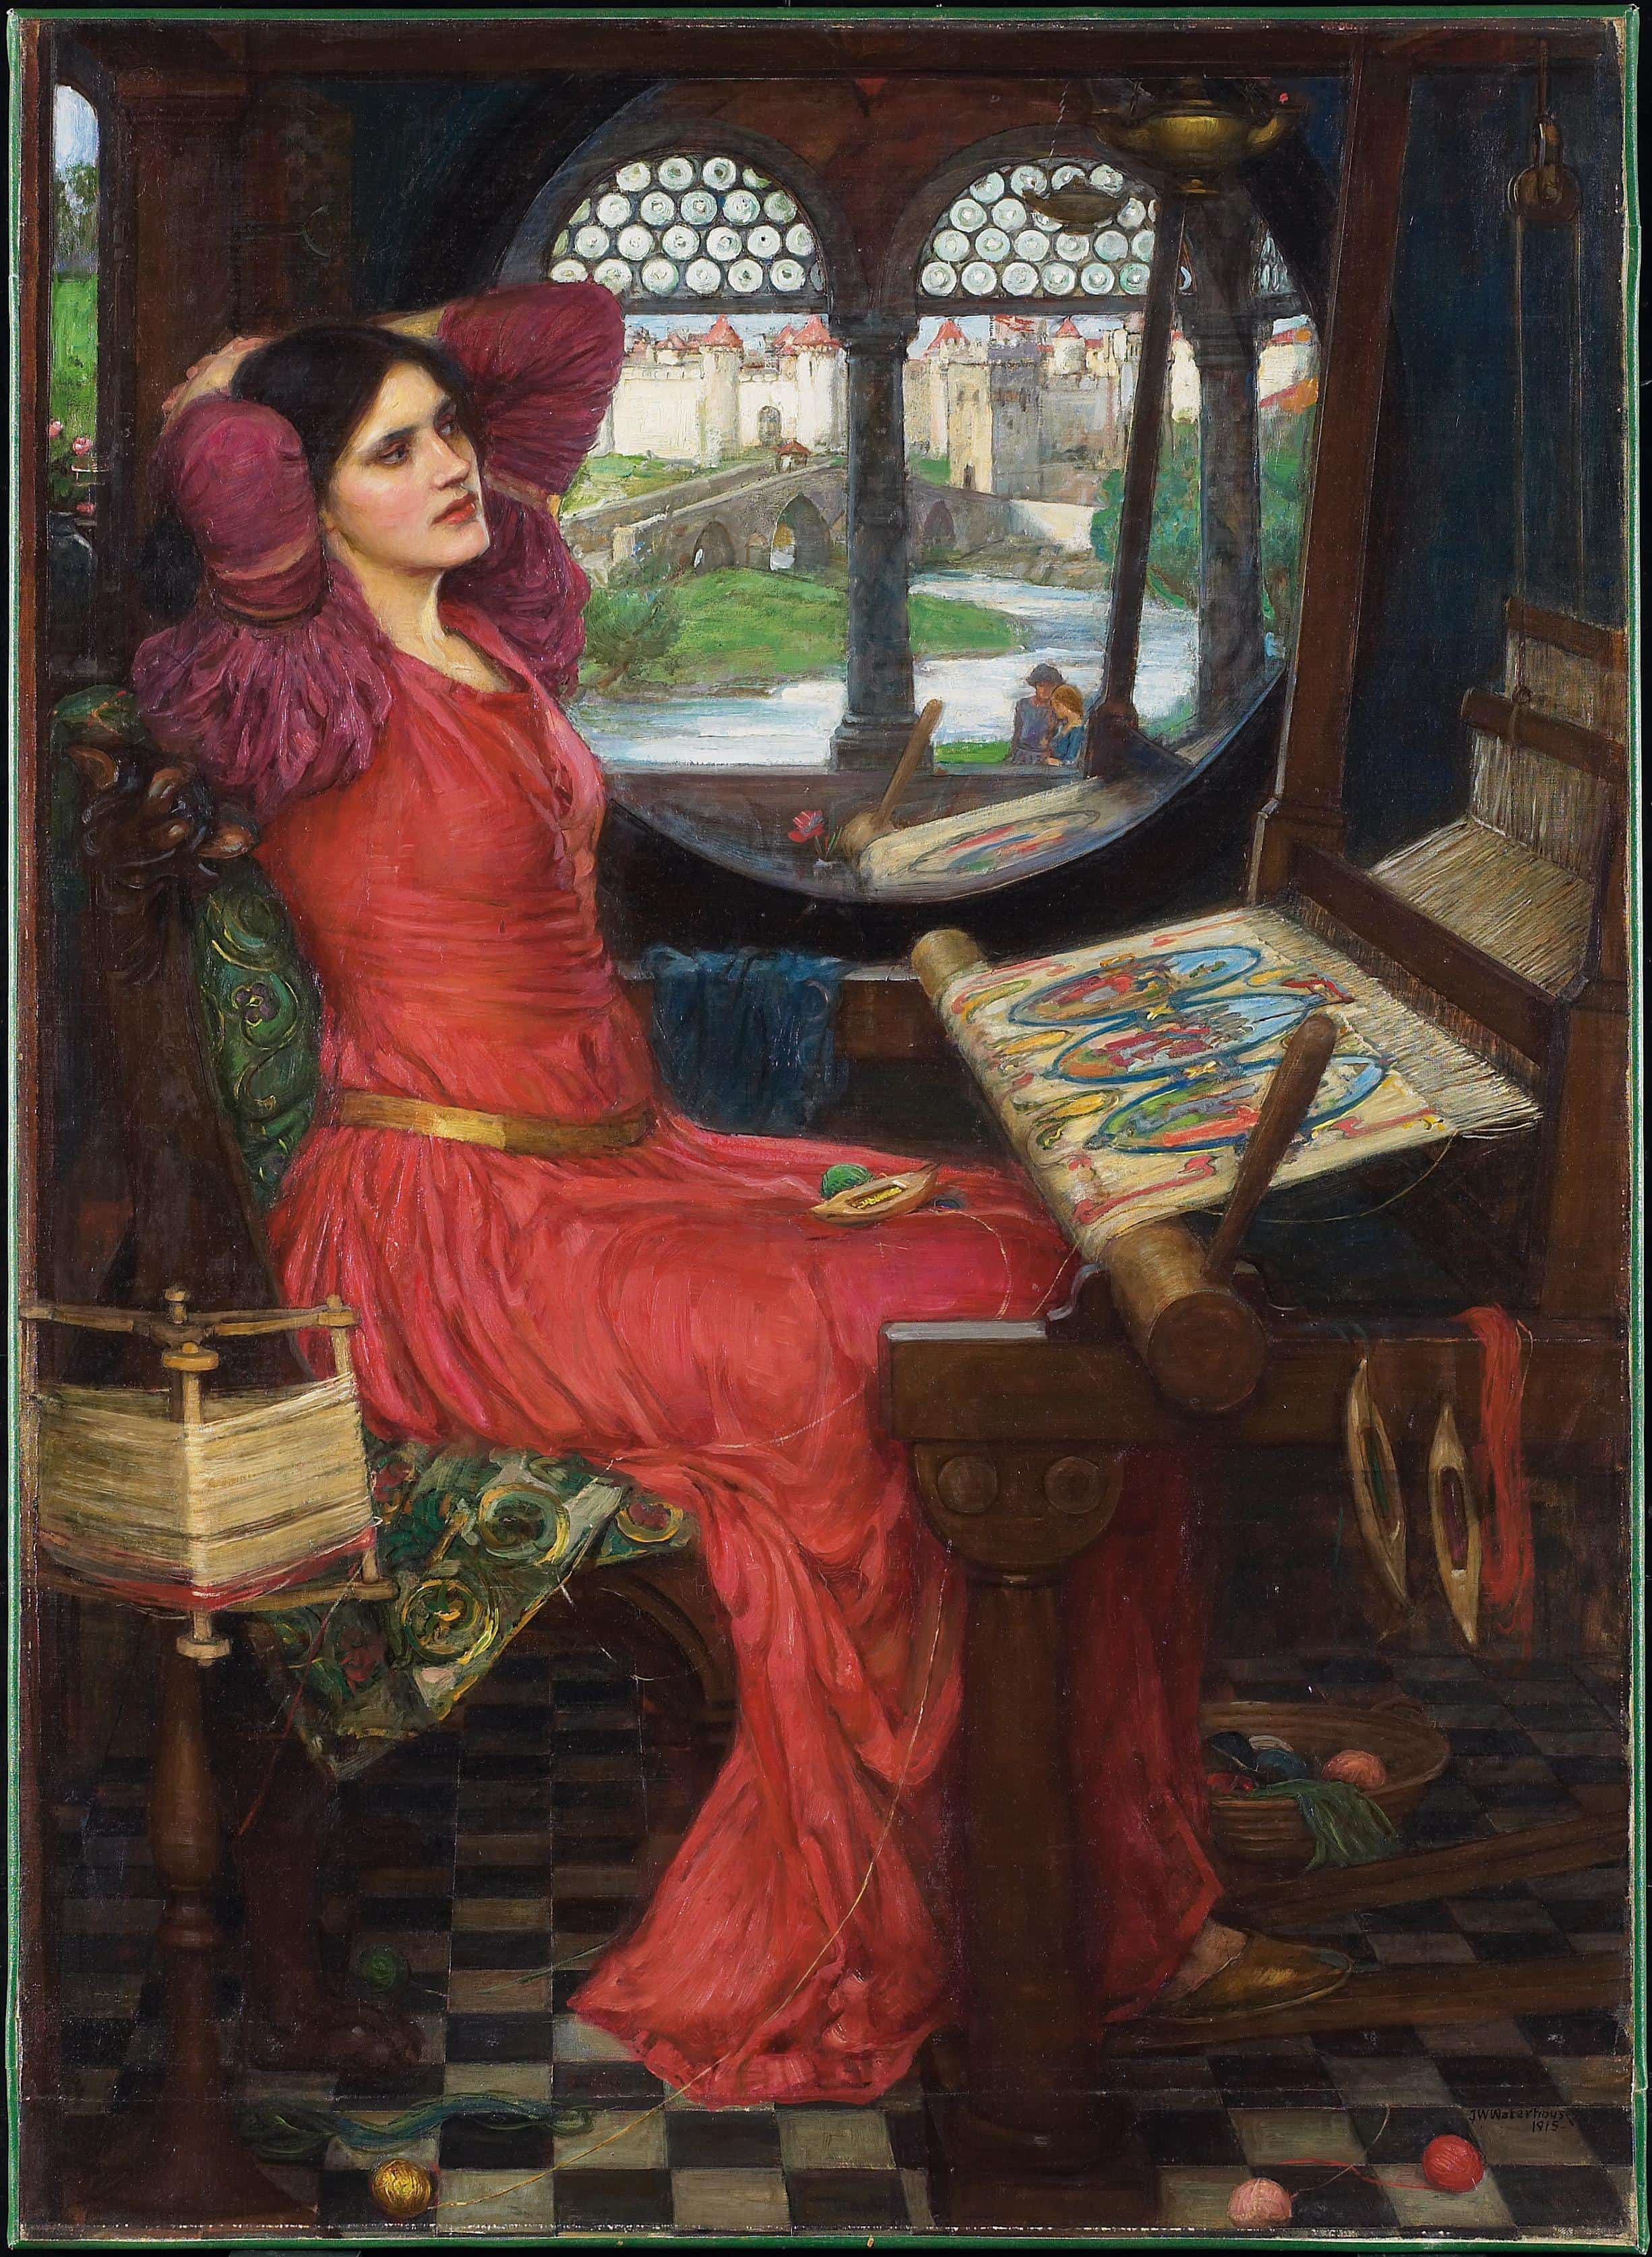 Famous windows - the window in the Lady of Shalott